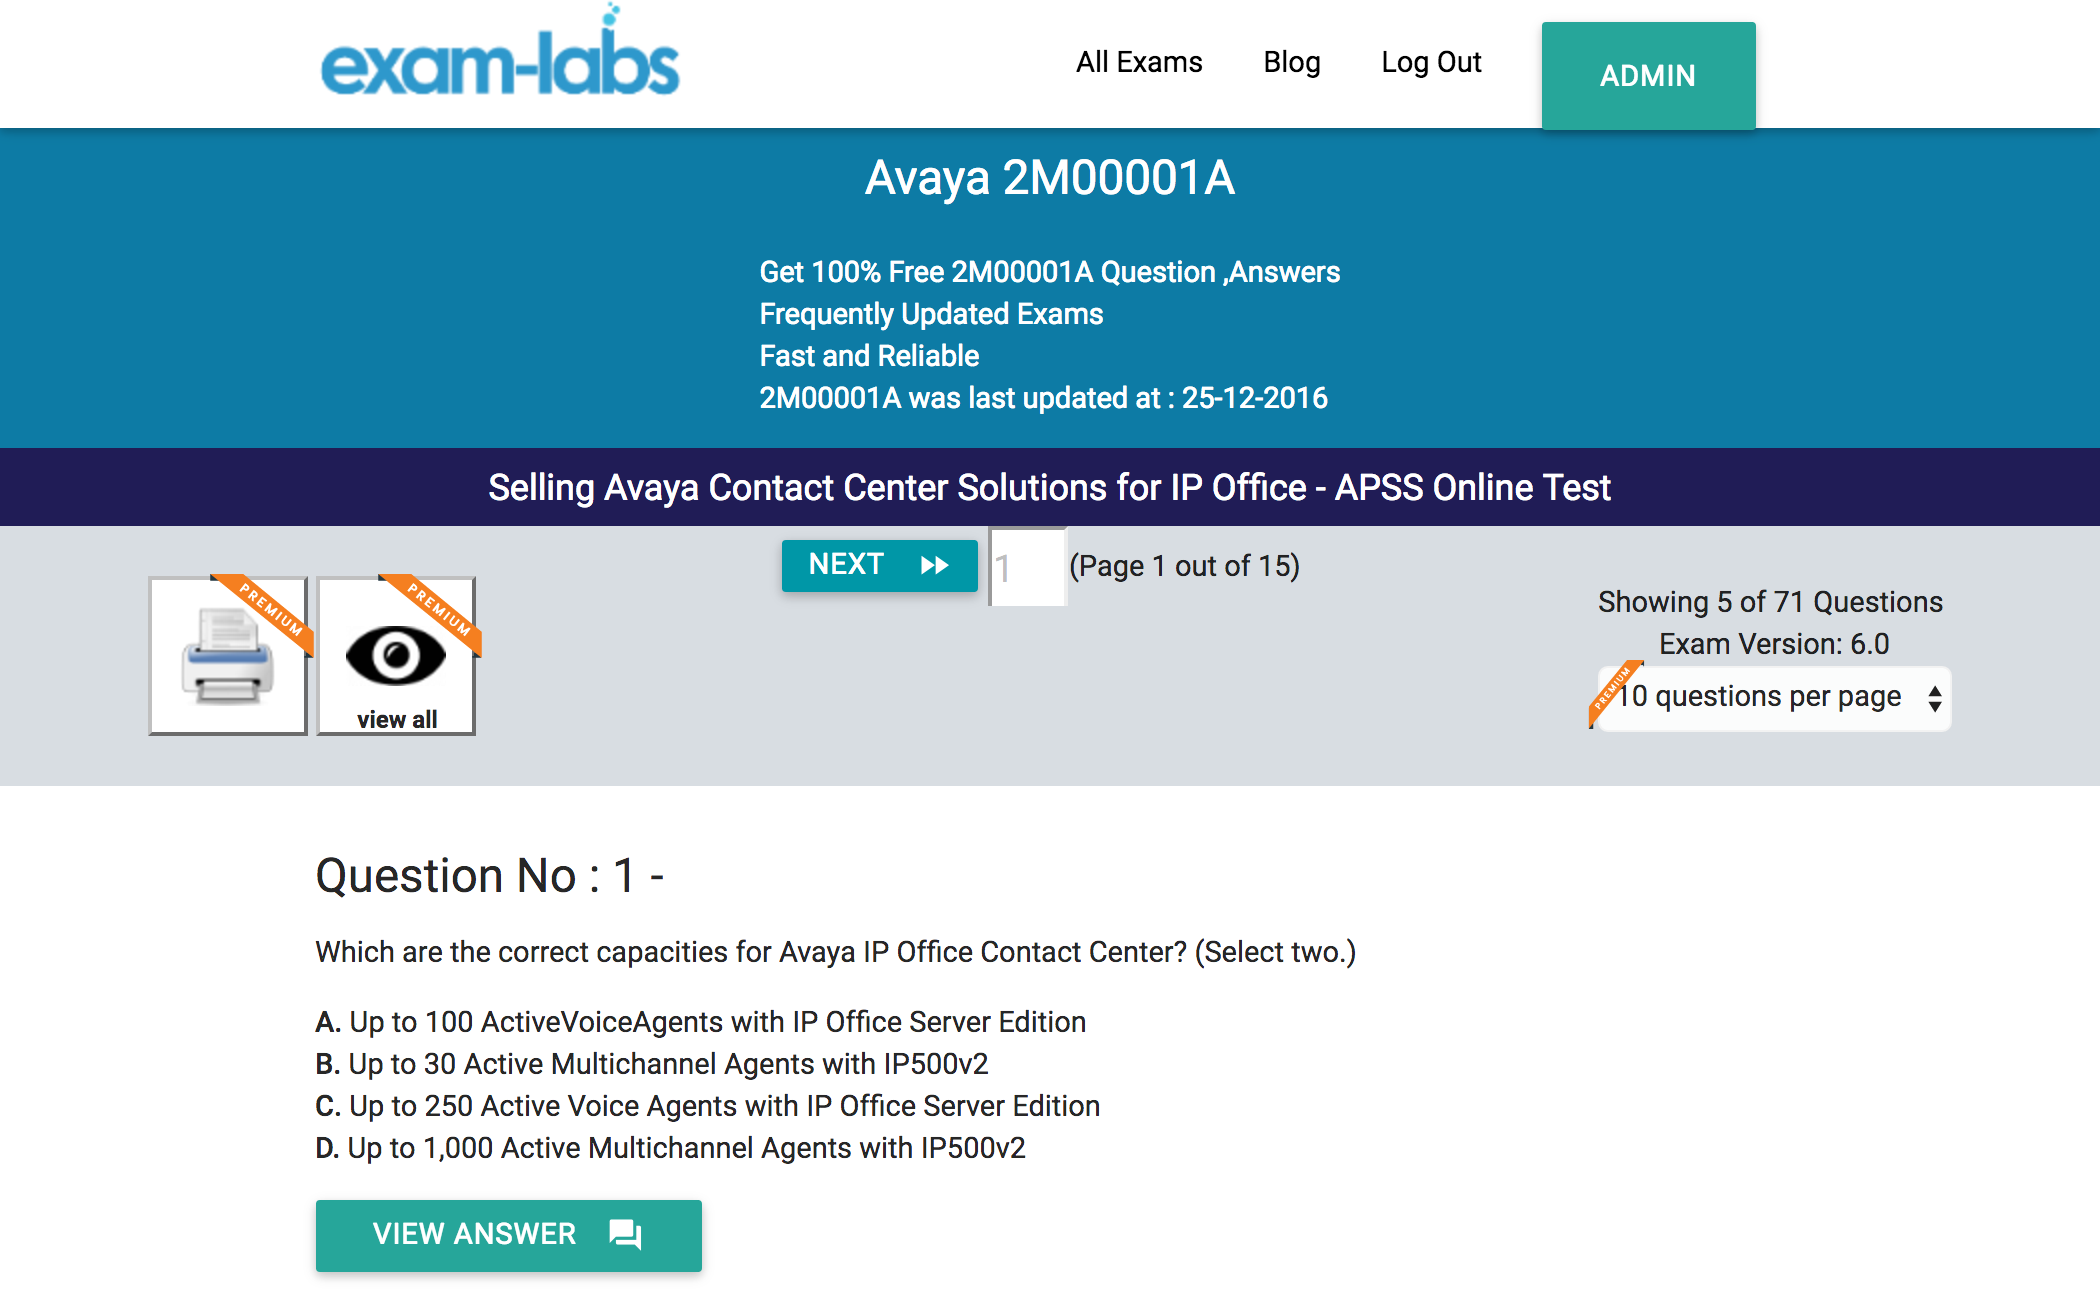 office test. Avaya 2M00001A Selling Contact Center Solutions For IP Office - APSS Online Test Exam